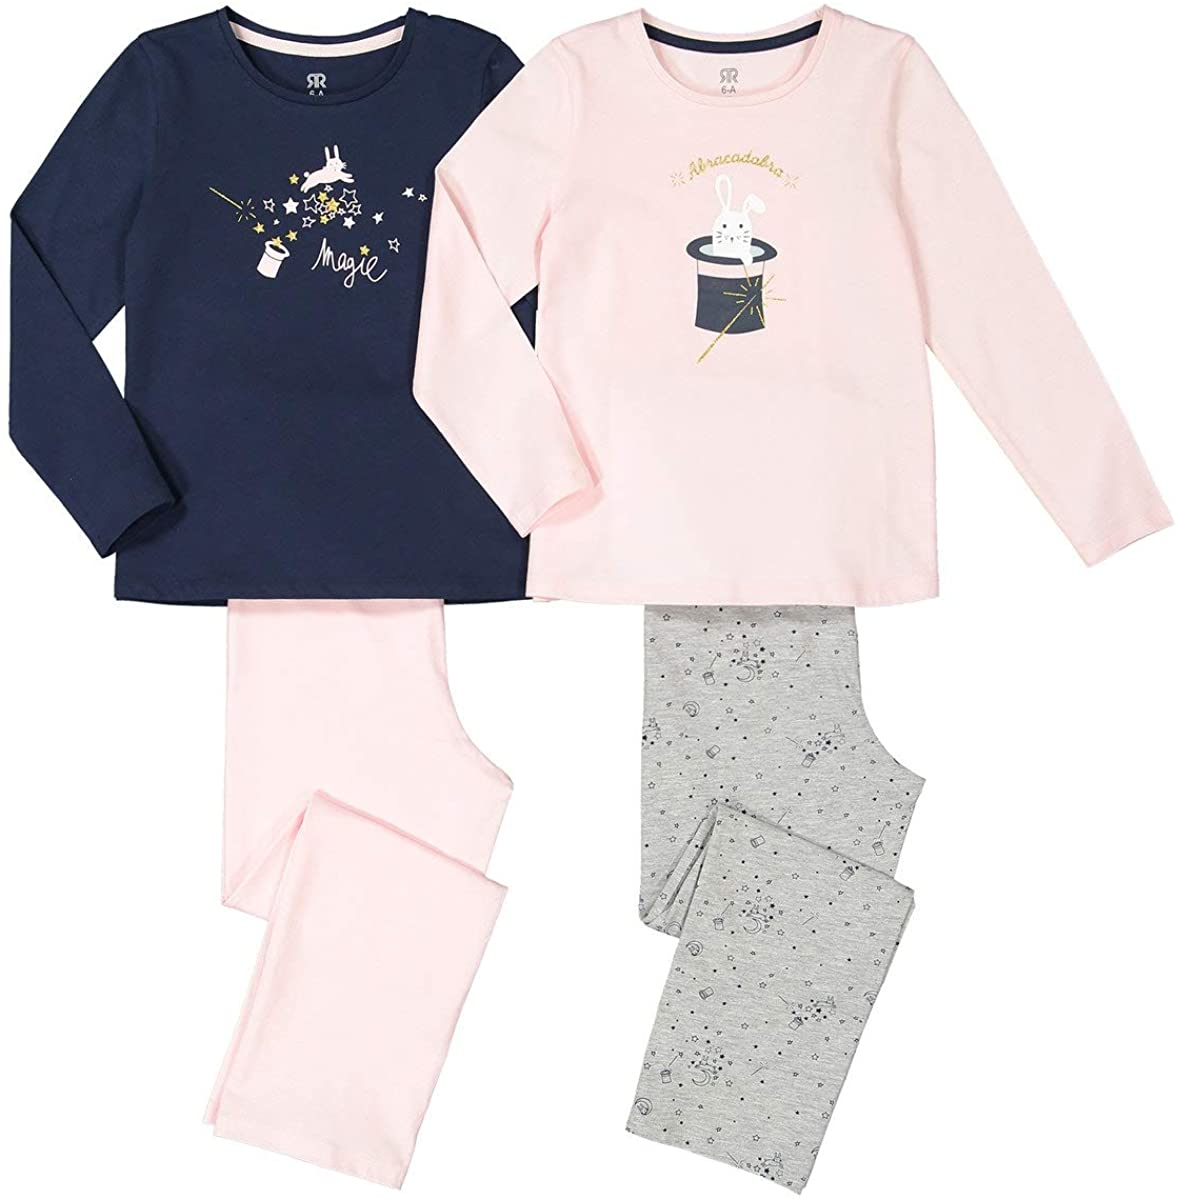 La Redoute Collection Pack of 2 Cotton Pyjamas, 3-12 Years